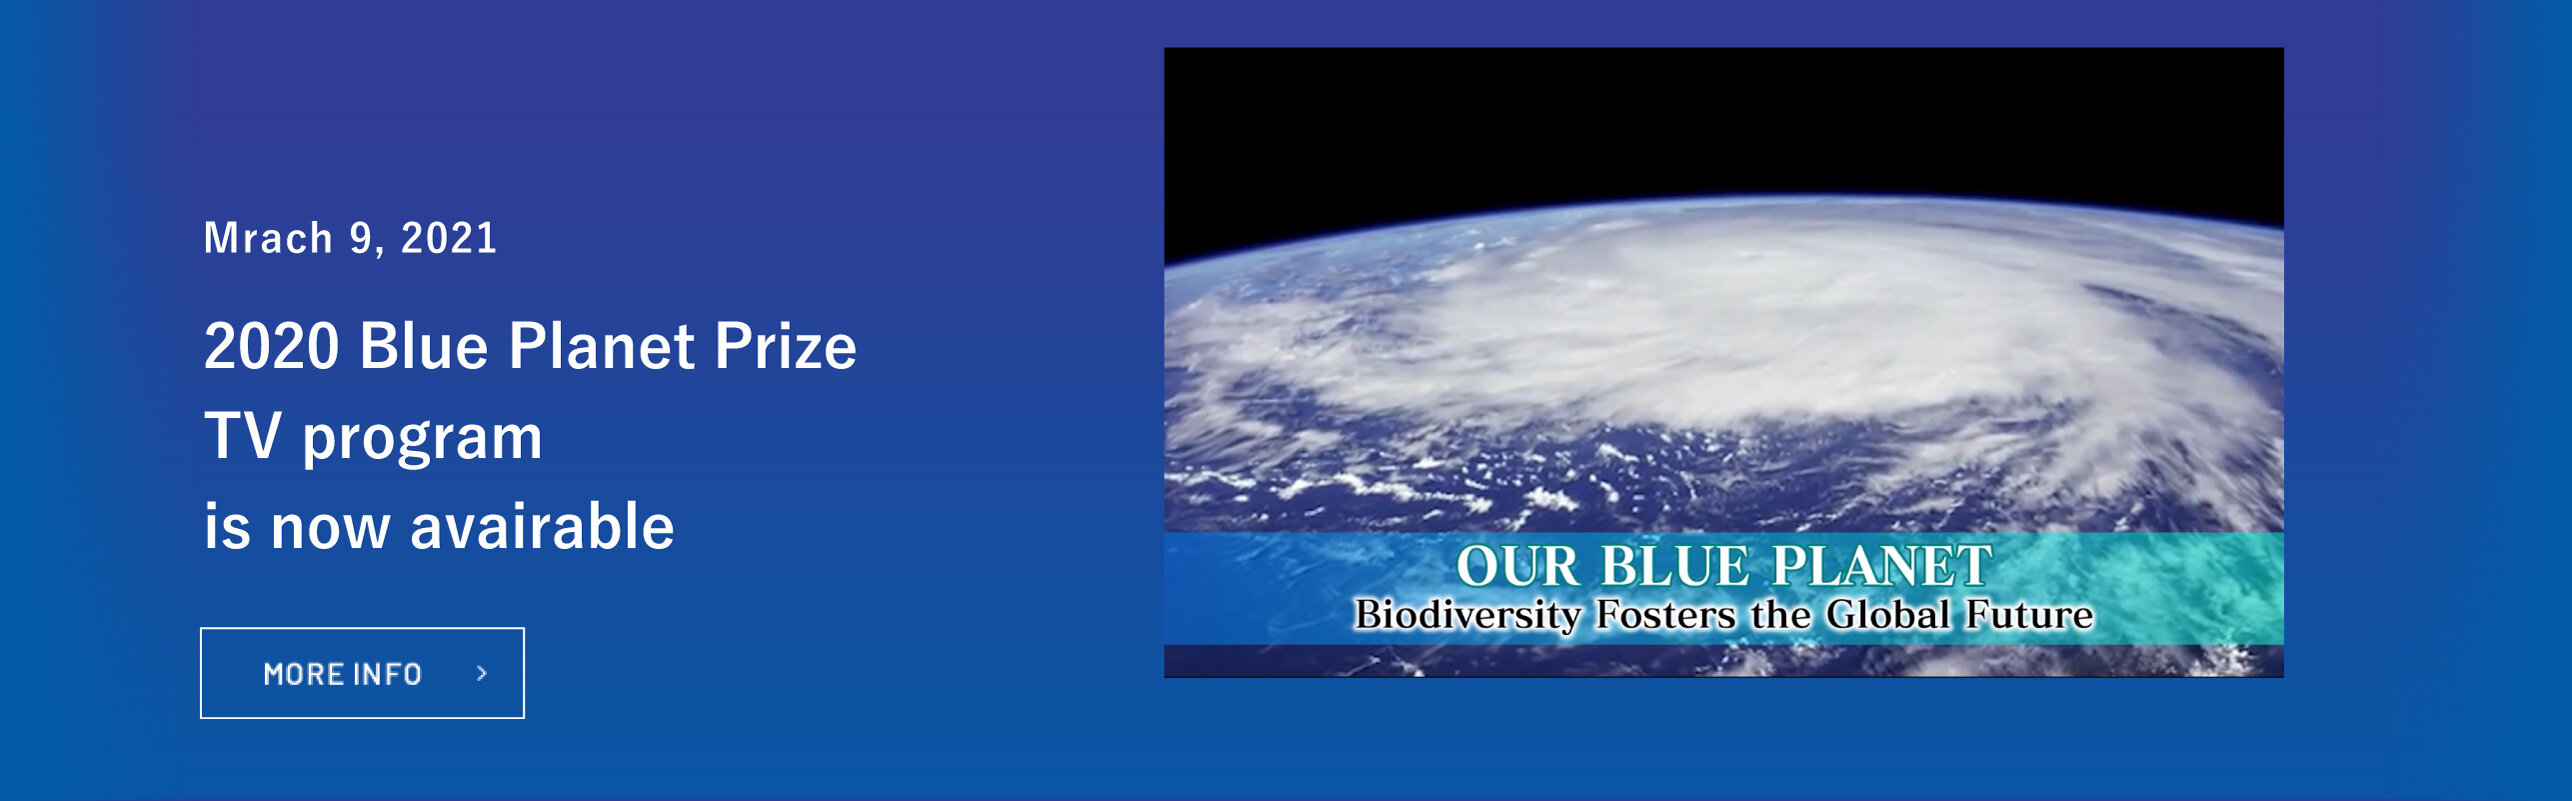 TV program, Our Blue Planet, featuring 2020 Blue Planet Prize winners, is now available on our website